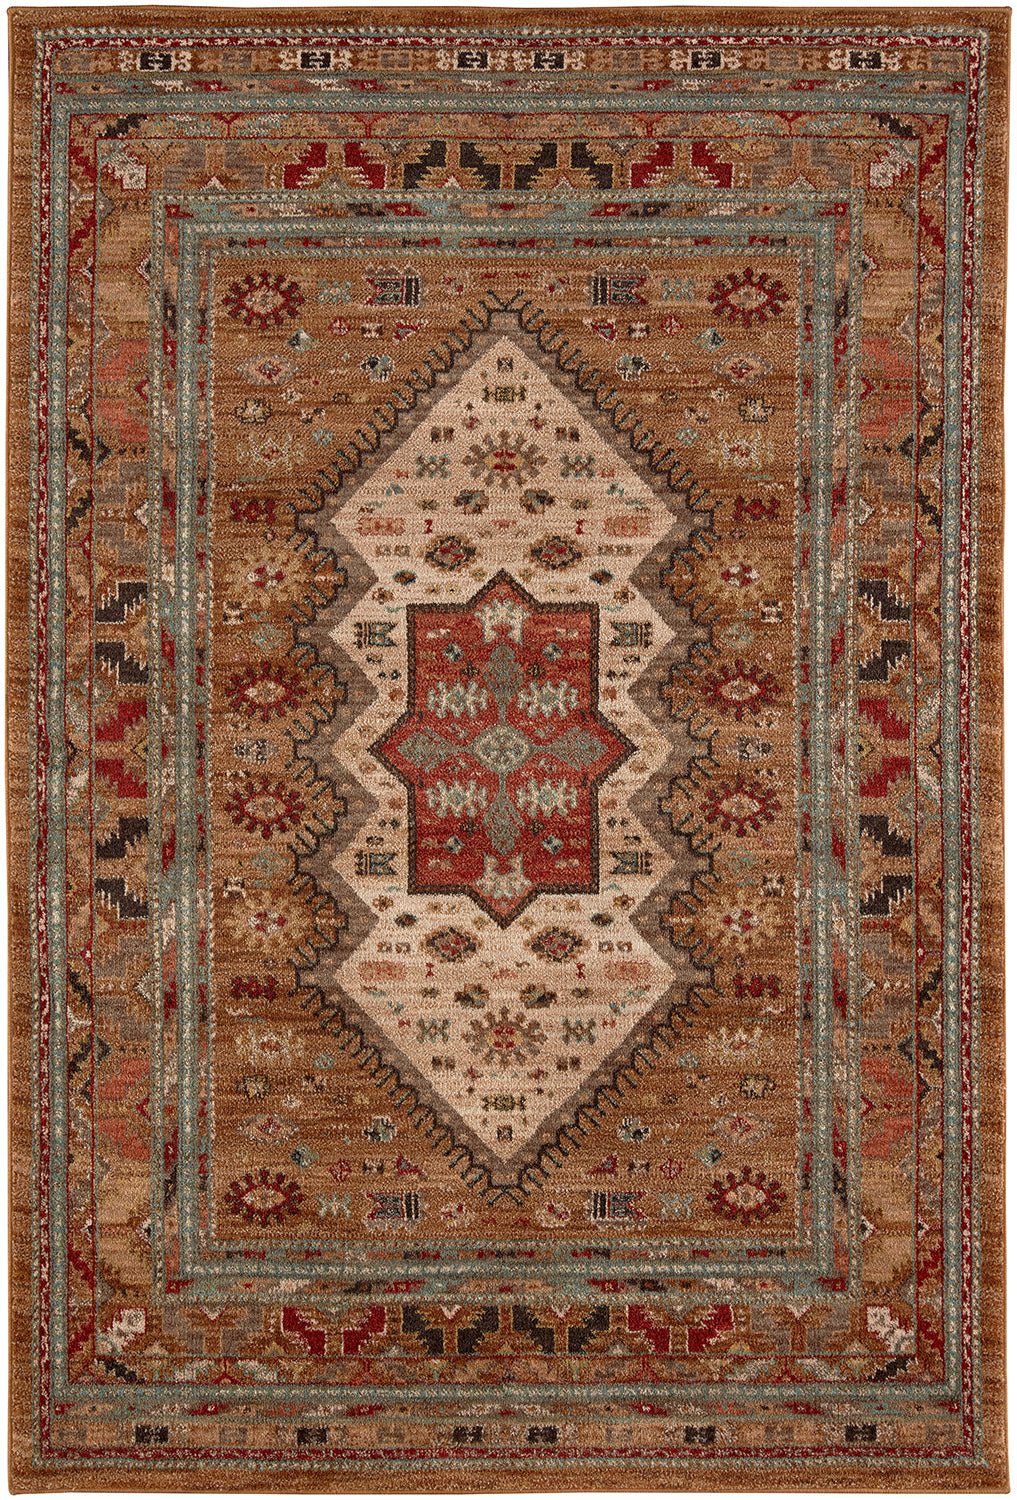 Karastan Spice Market Rug Collection Incredible Rugs And